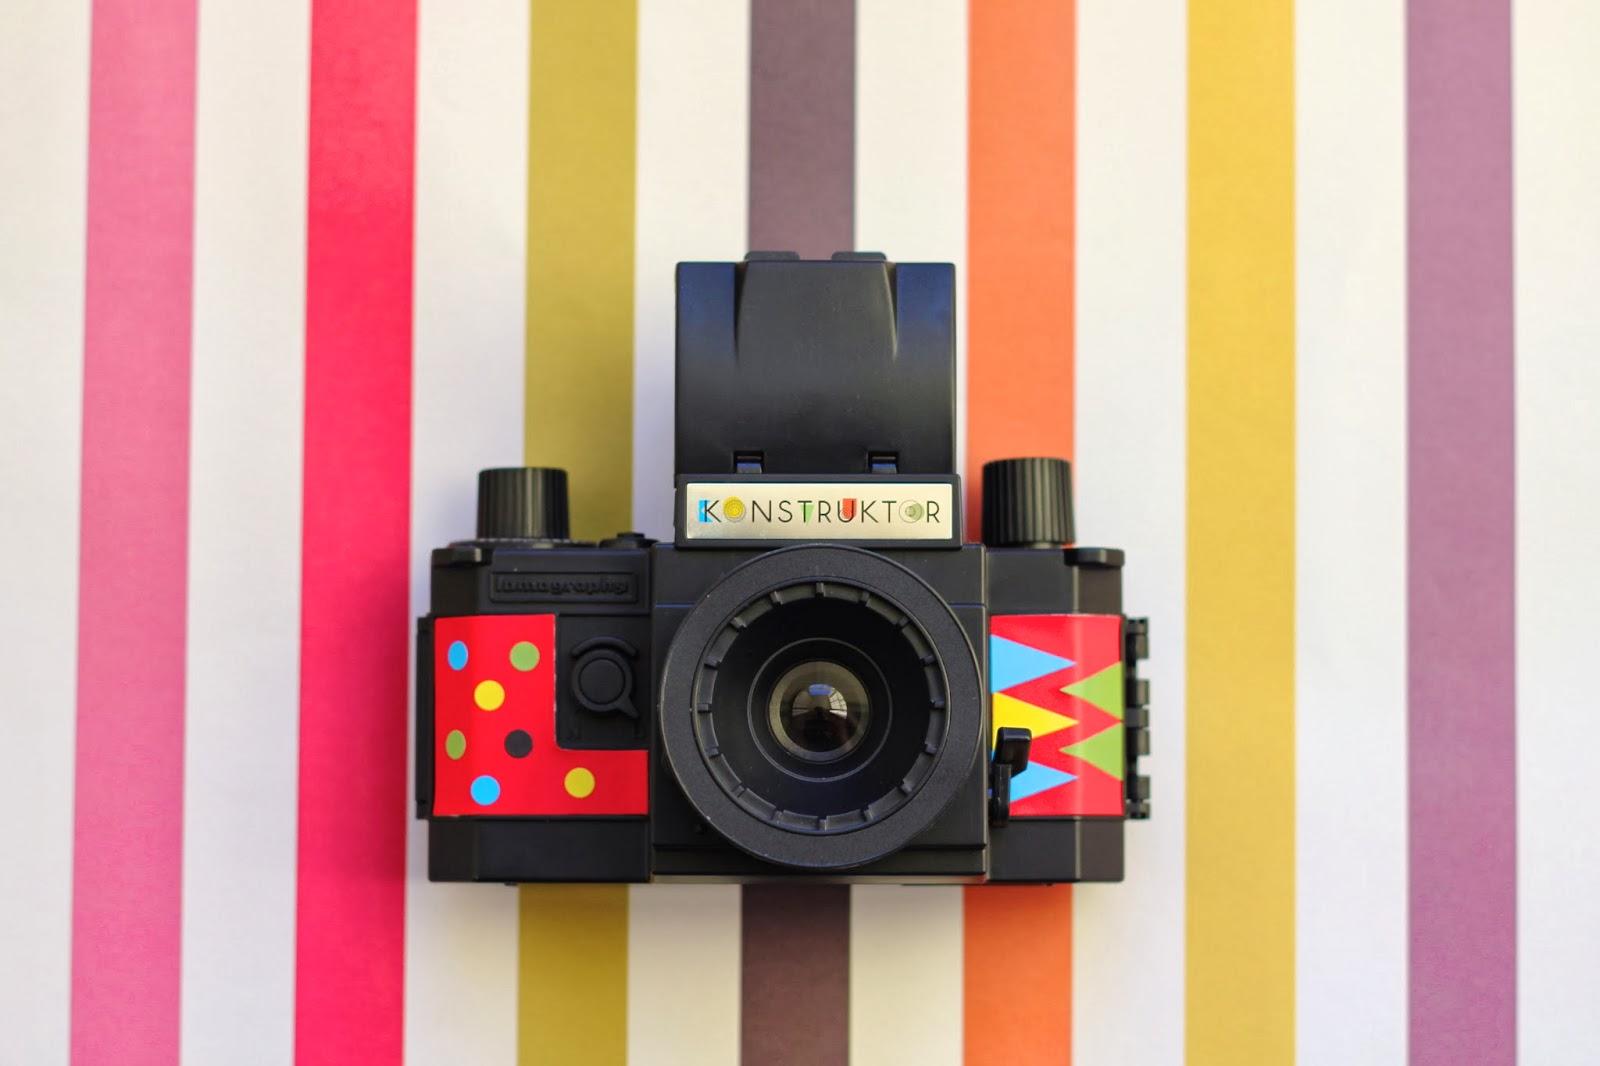 My brother bought me some lomography film as well, so I'm going to